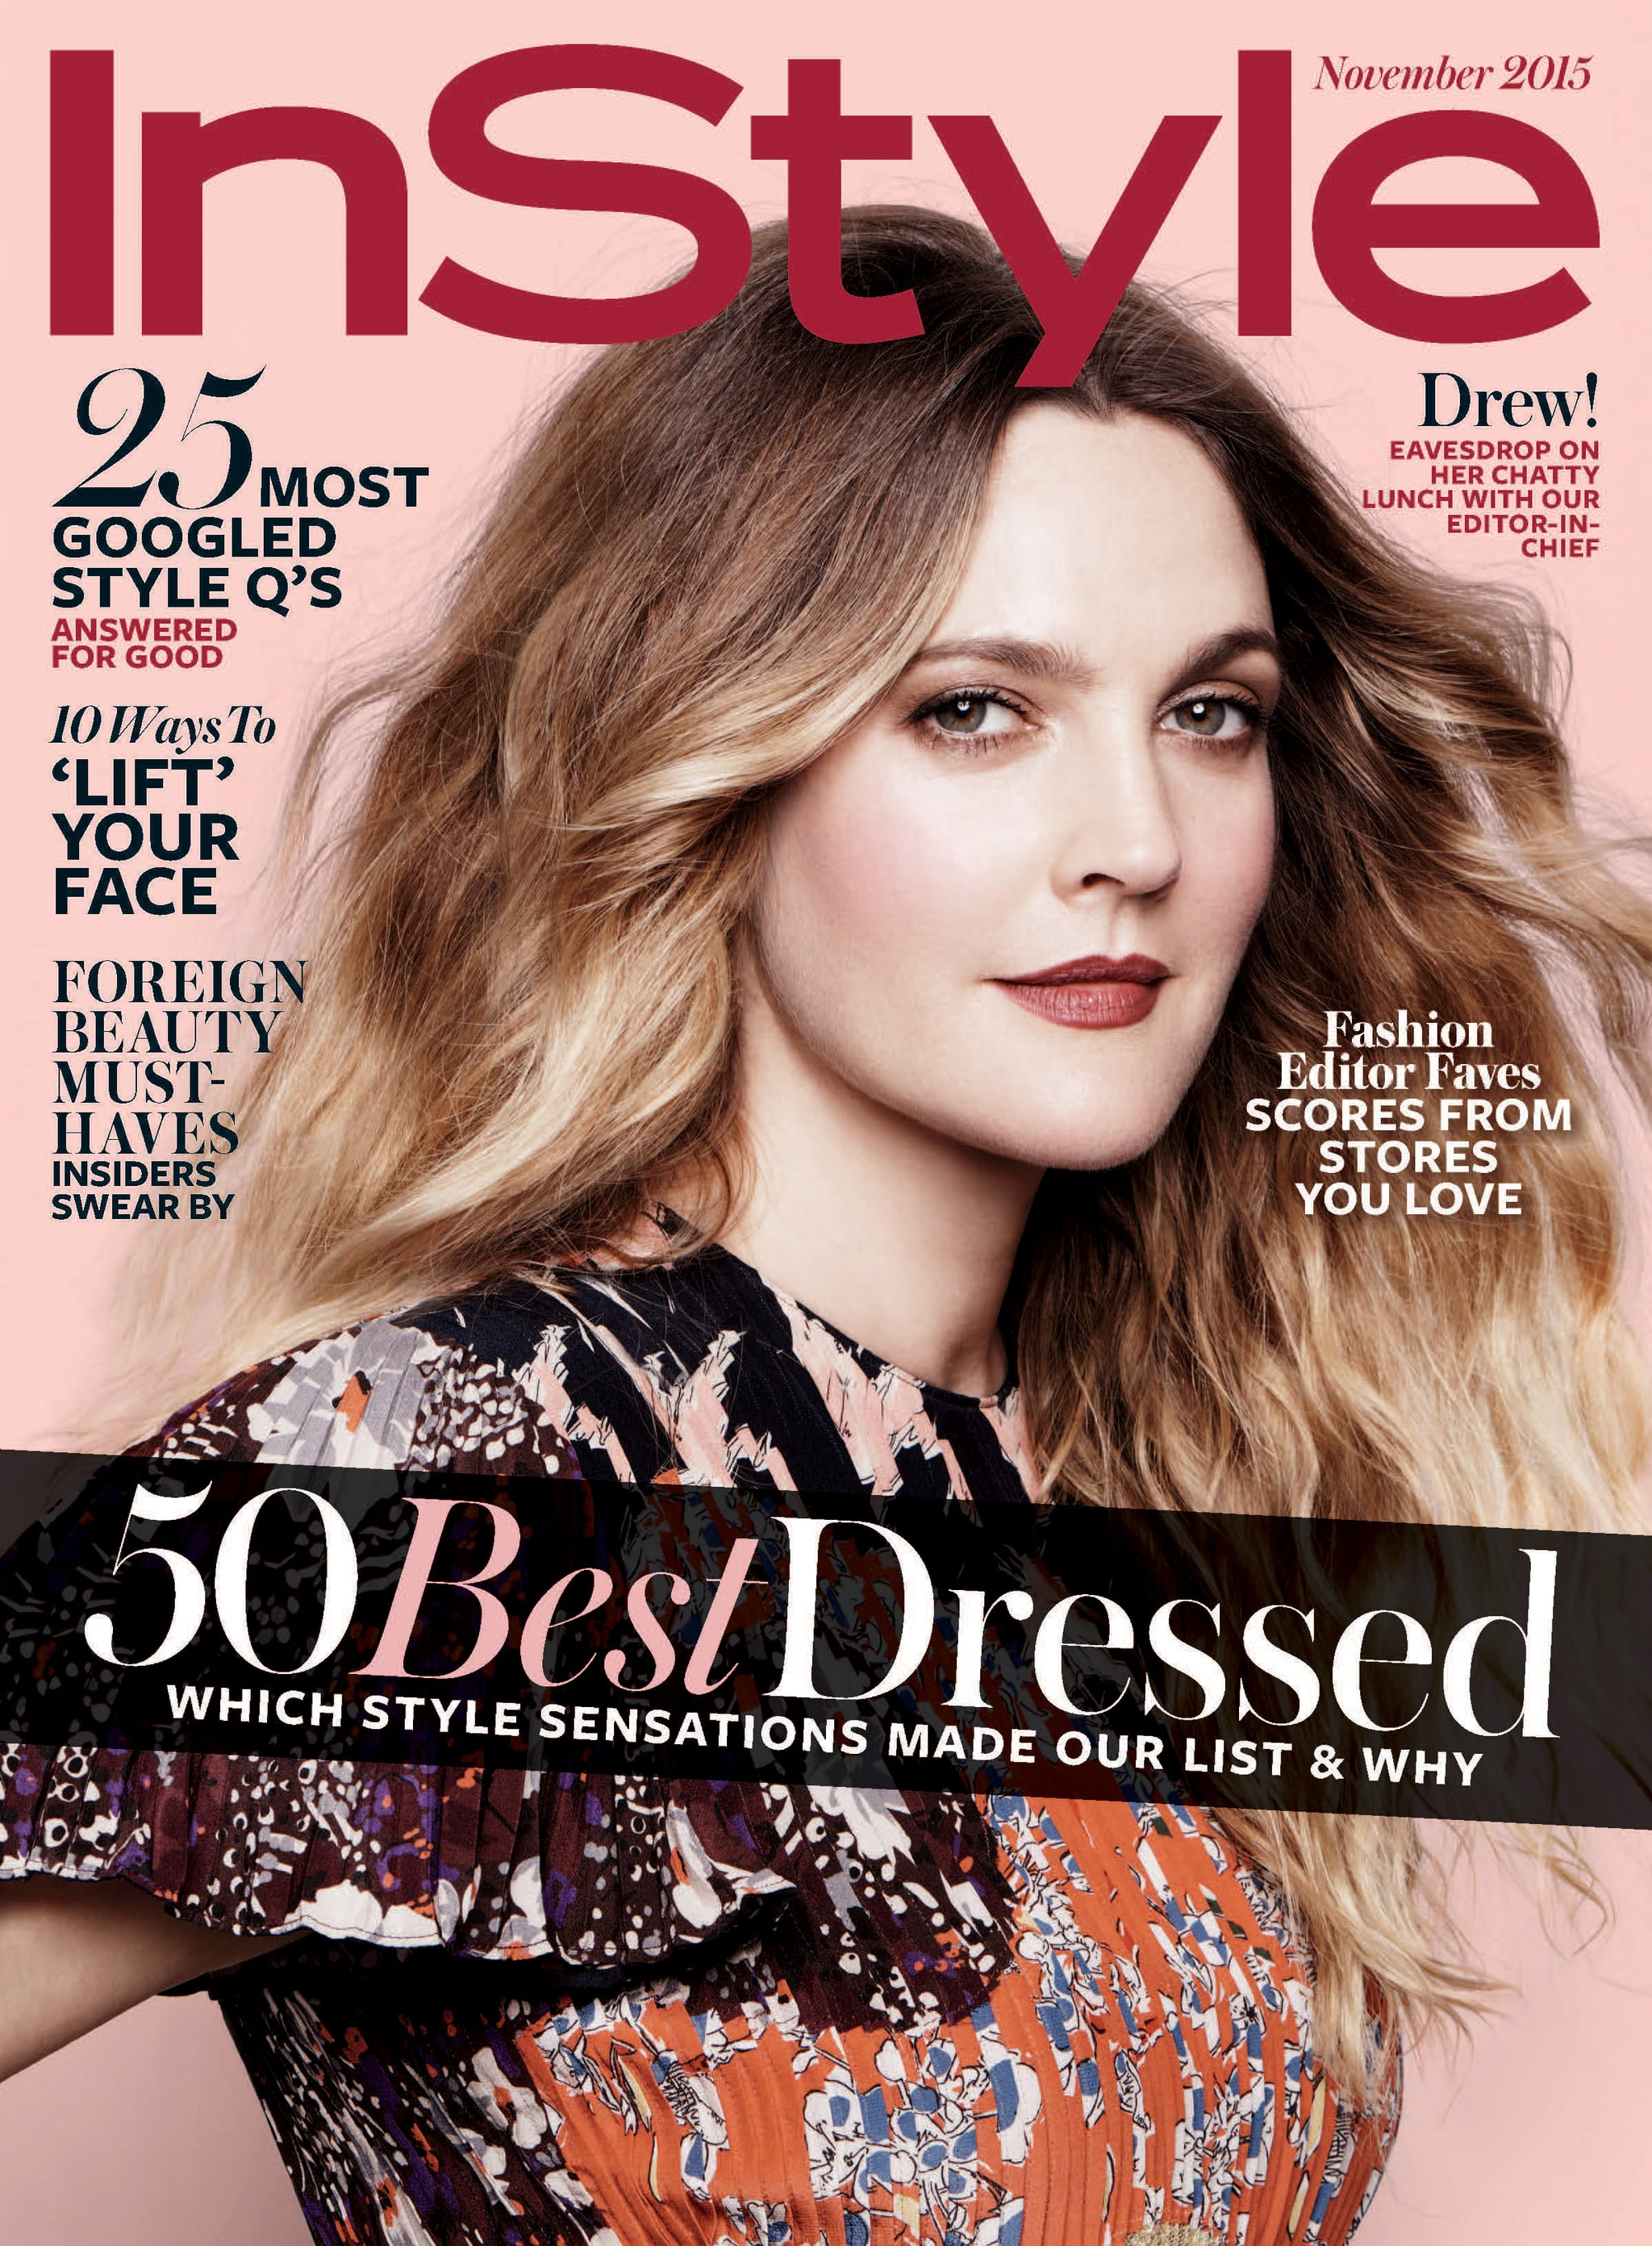 Instyle Magazine Us: Drew Barrymore In InStyle Magazine November 2015